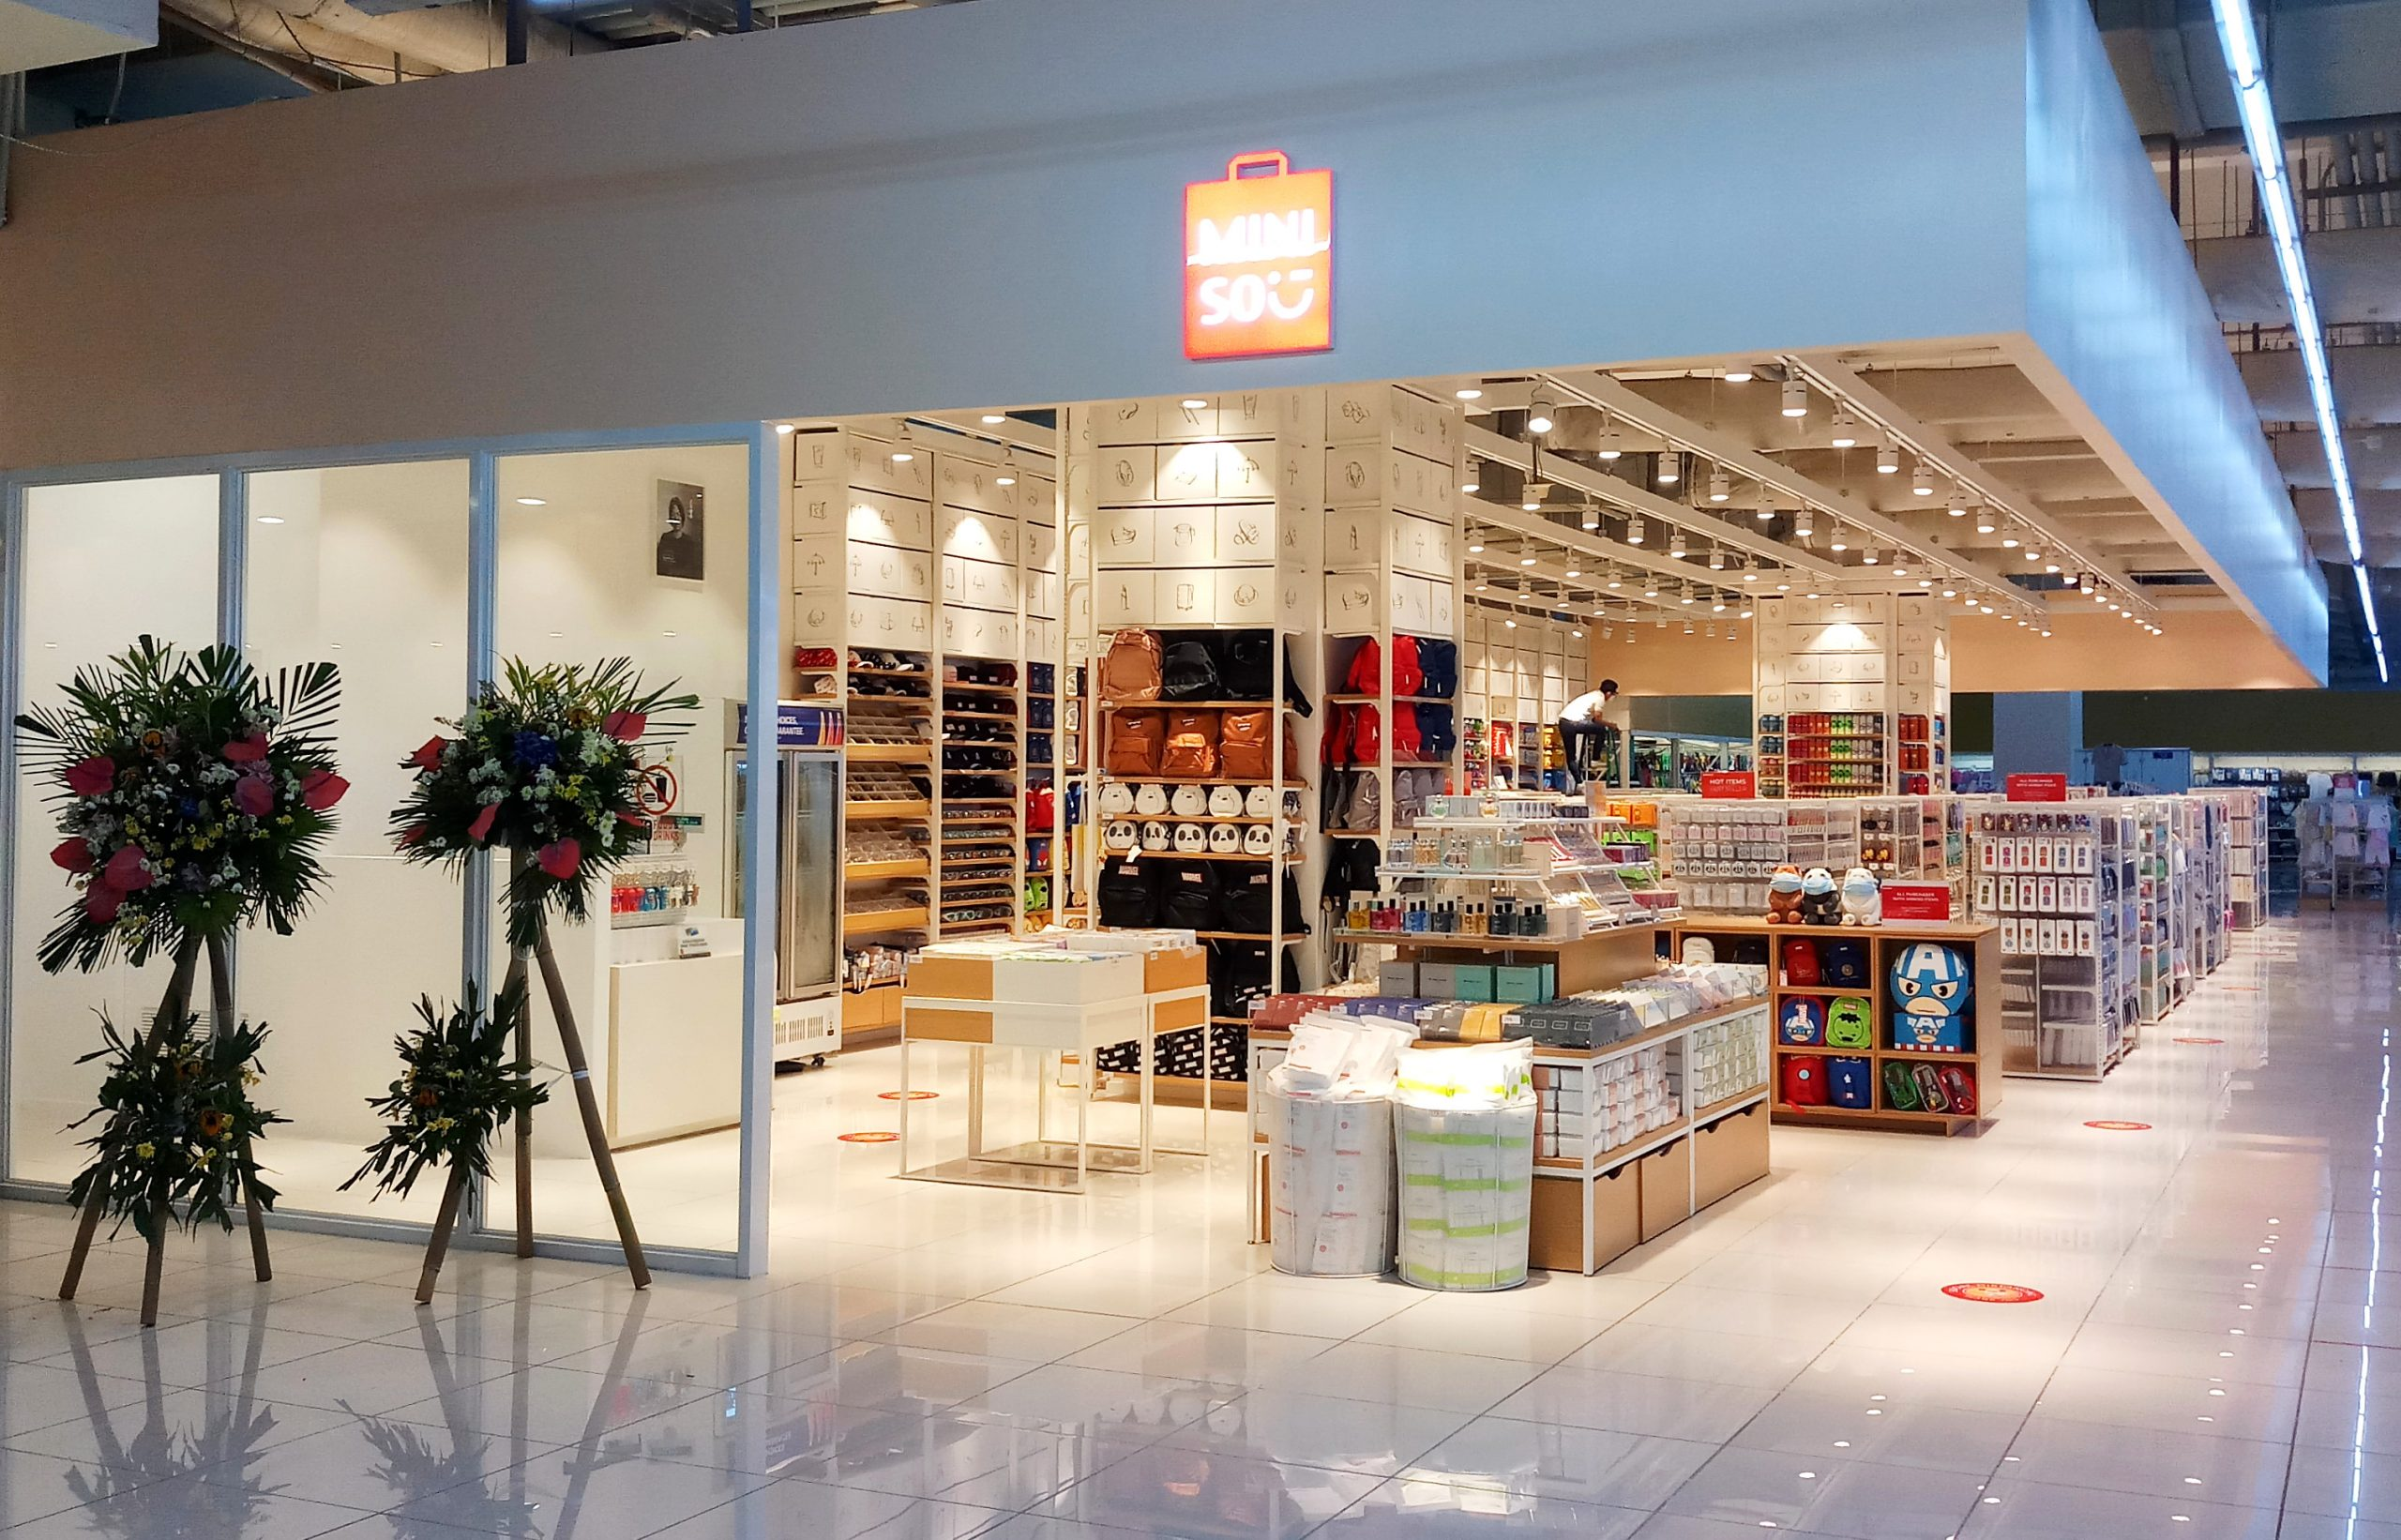 Bringing recreational shopping experience, Miniso opened its second outlet at SM City Marilao Hypermarket. The 214 square meter store carries innovative products ranging from Creative Home Necessities, Health & Beauty, Jewelry, Fashion Accessories, Stylistic Gifts, Office Supplies, Stationery Gifts, Seasonal Products, Boutique Package Decoration, Digital Accessories as well as Food and Drink.